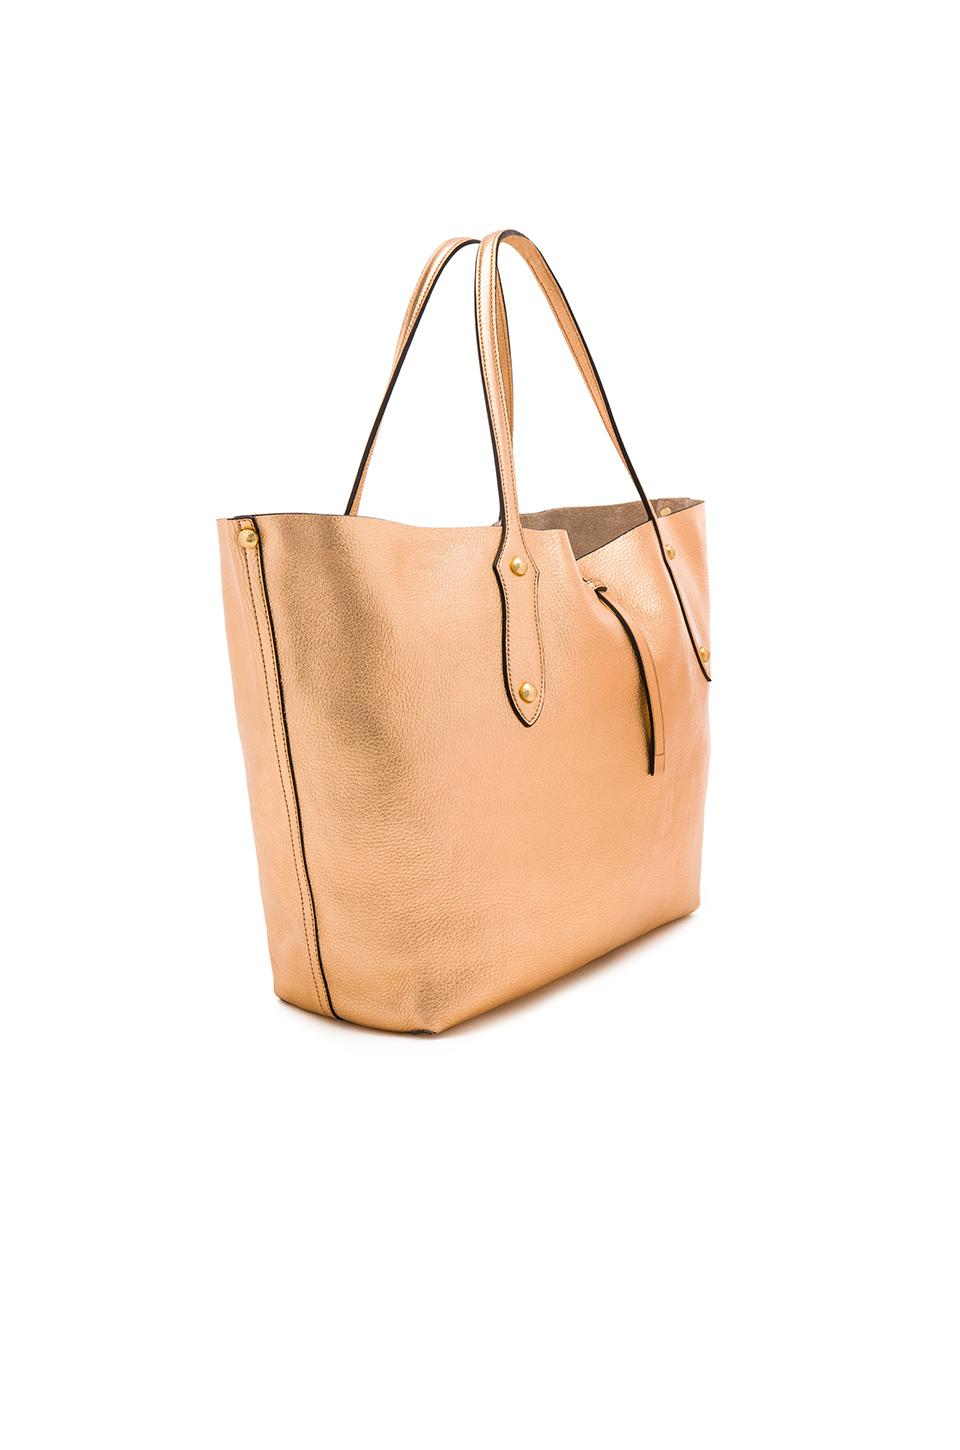 a28a359d08af Lyst - Annabel Ingall Large Isabella Tote in Brown